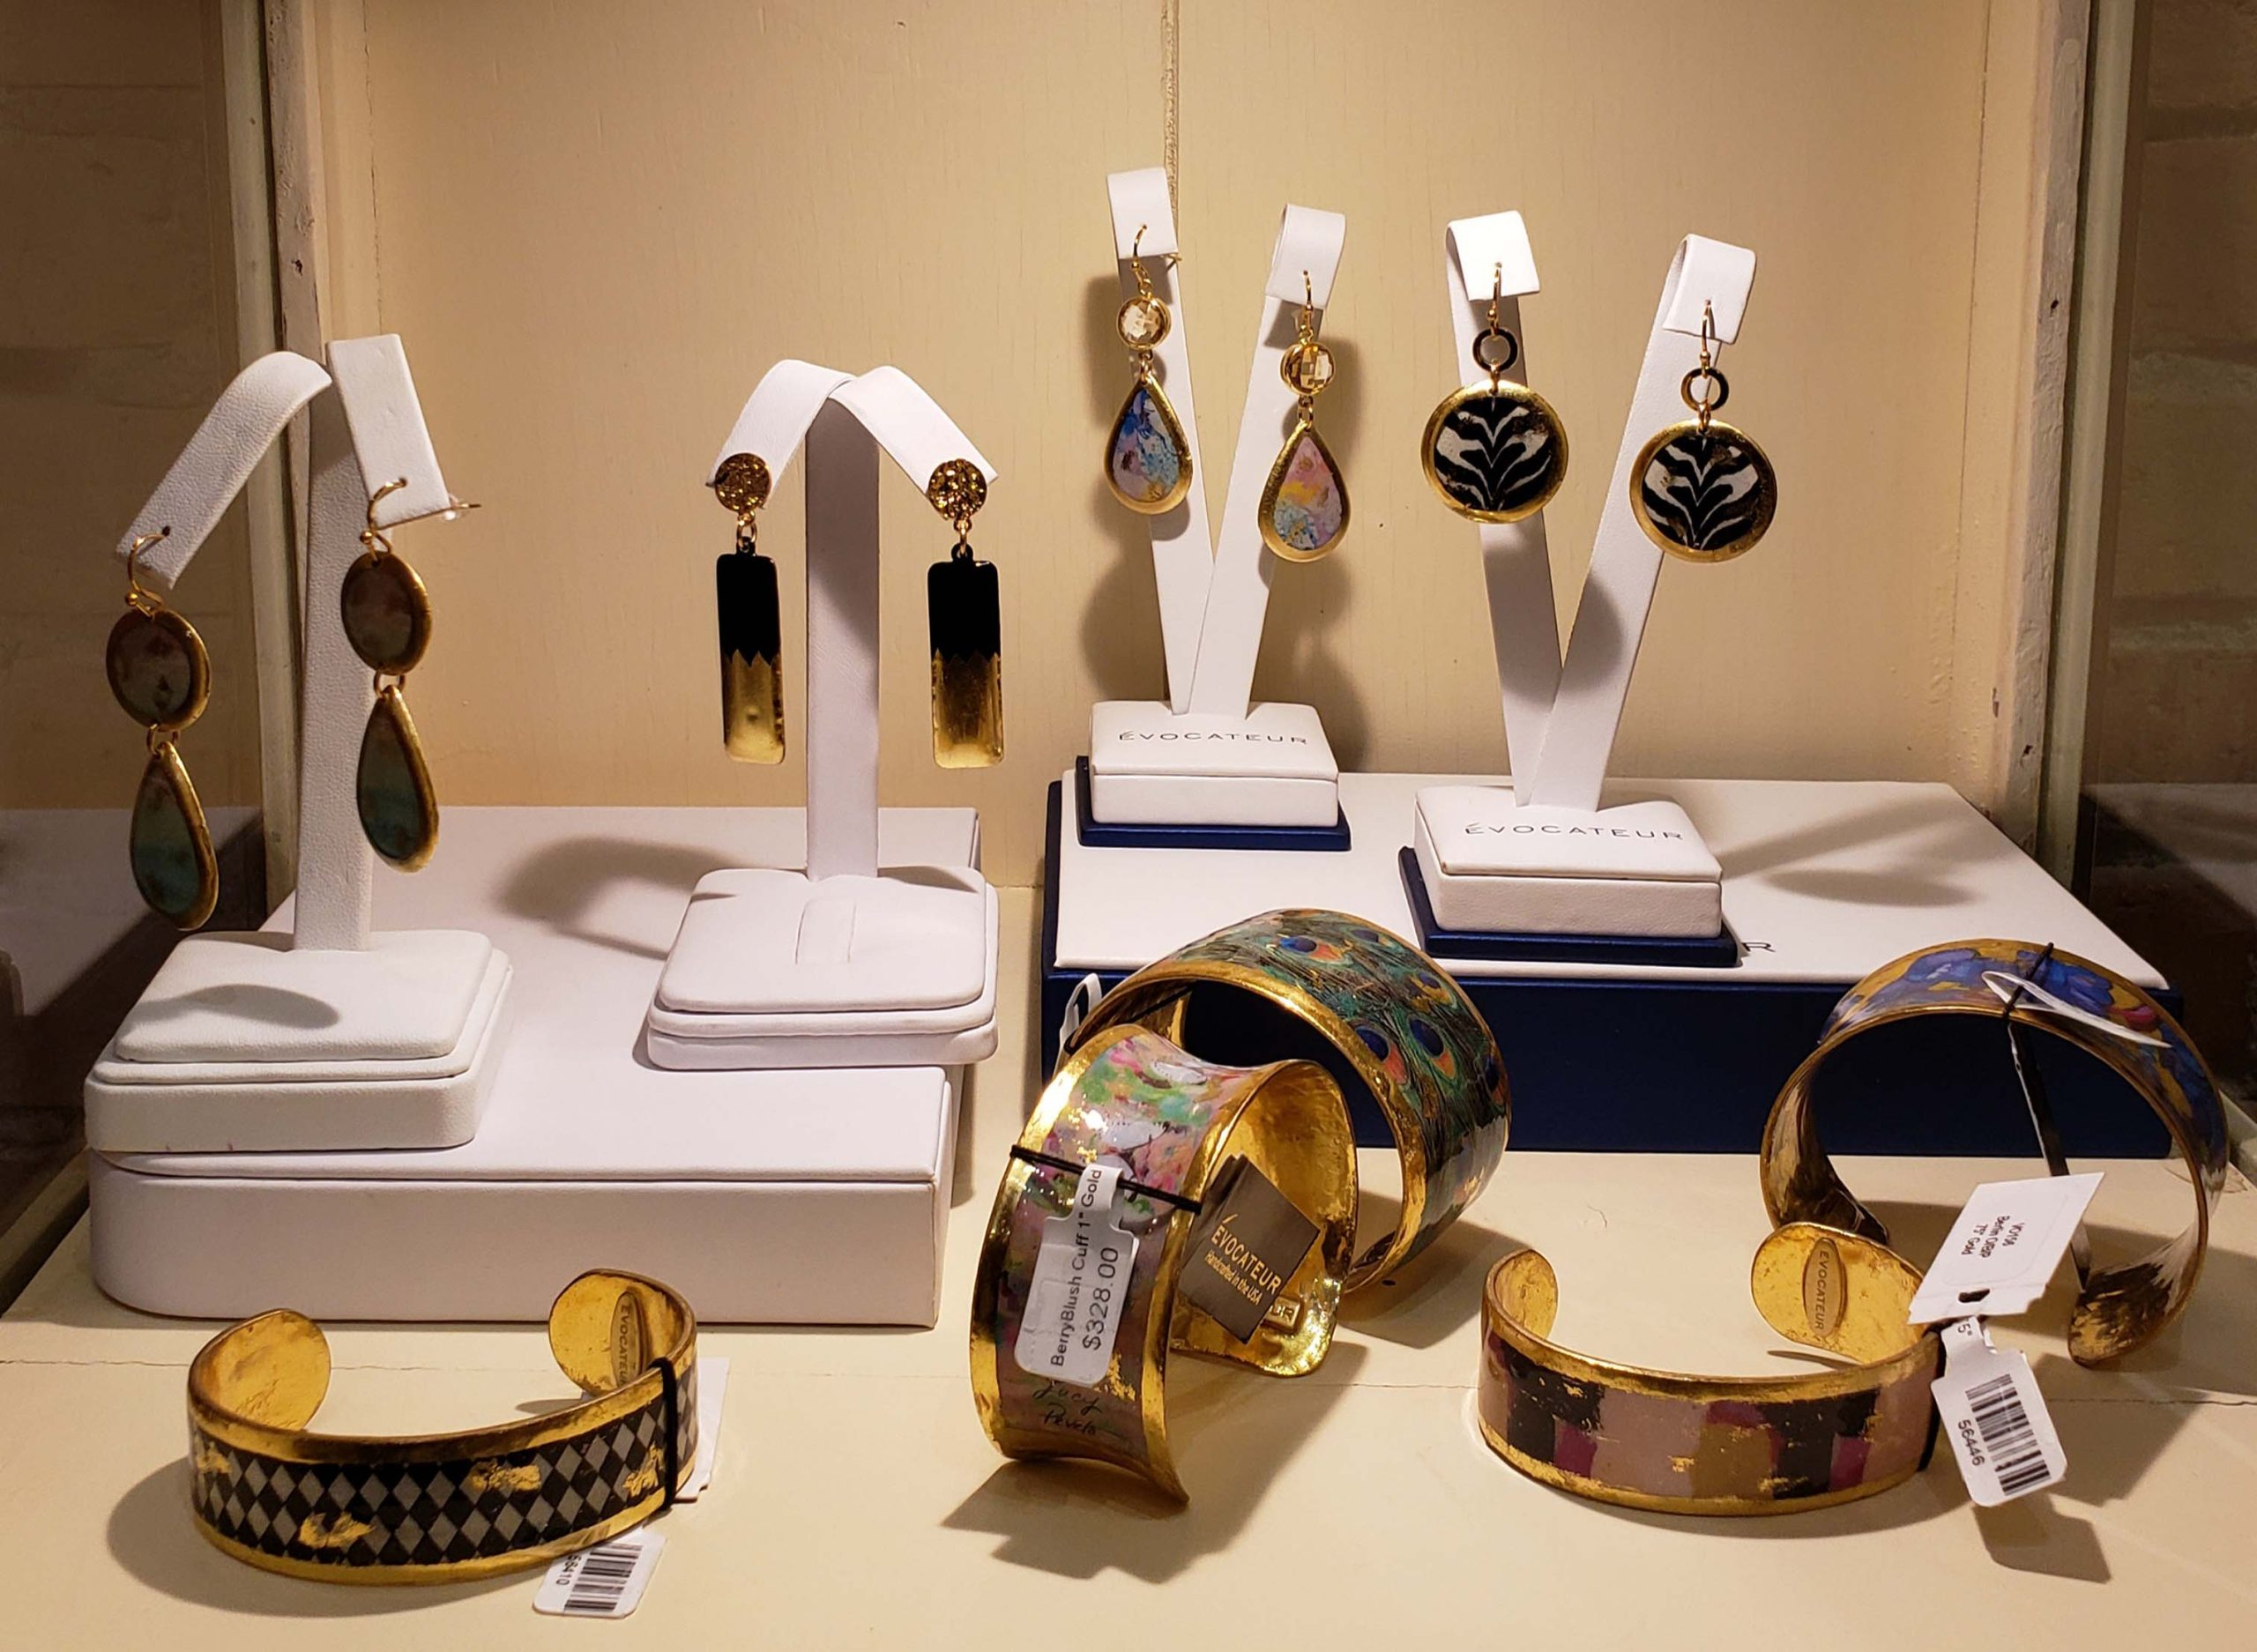 Hand made cuffs, earrings and pendants.